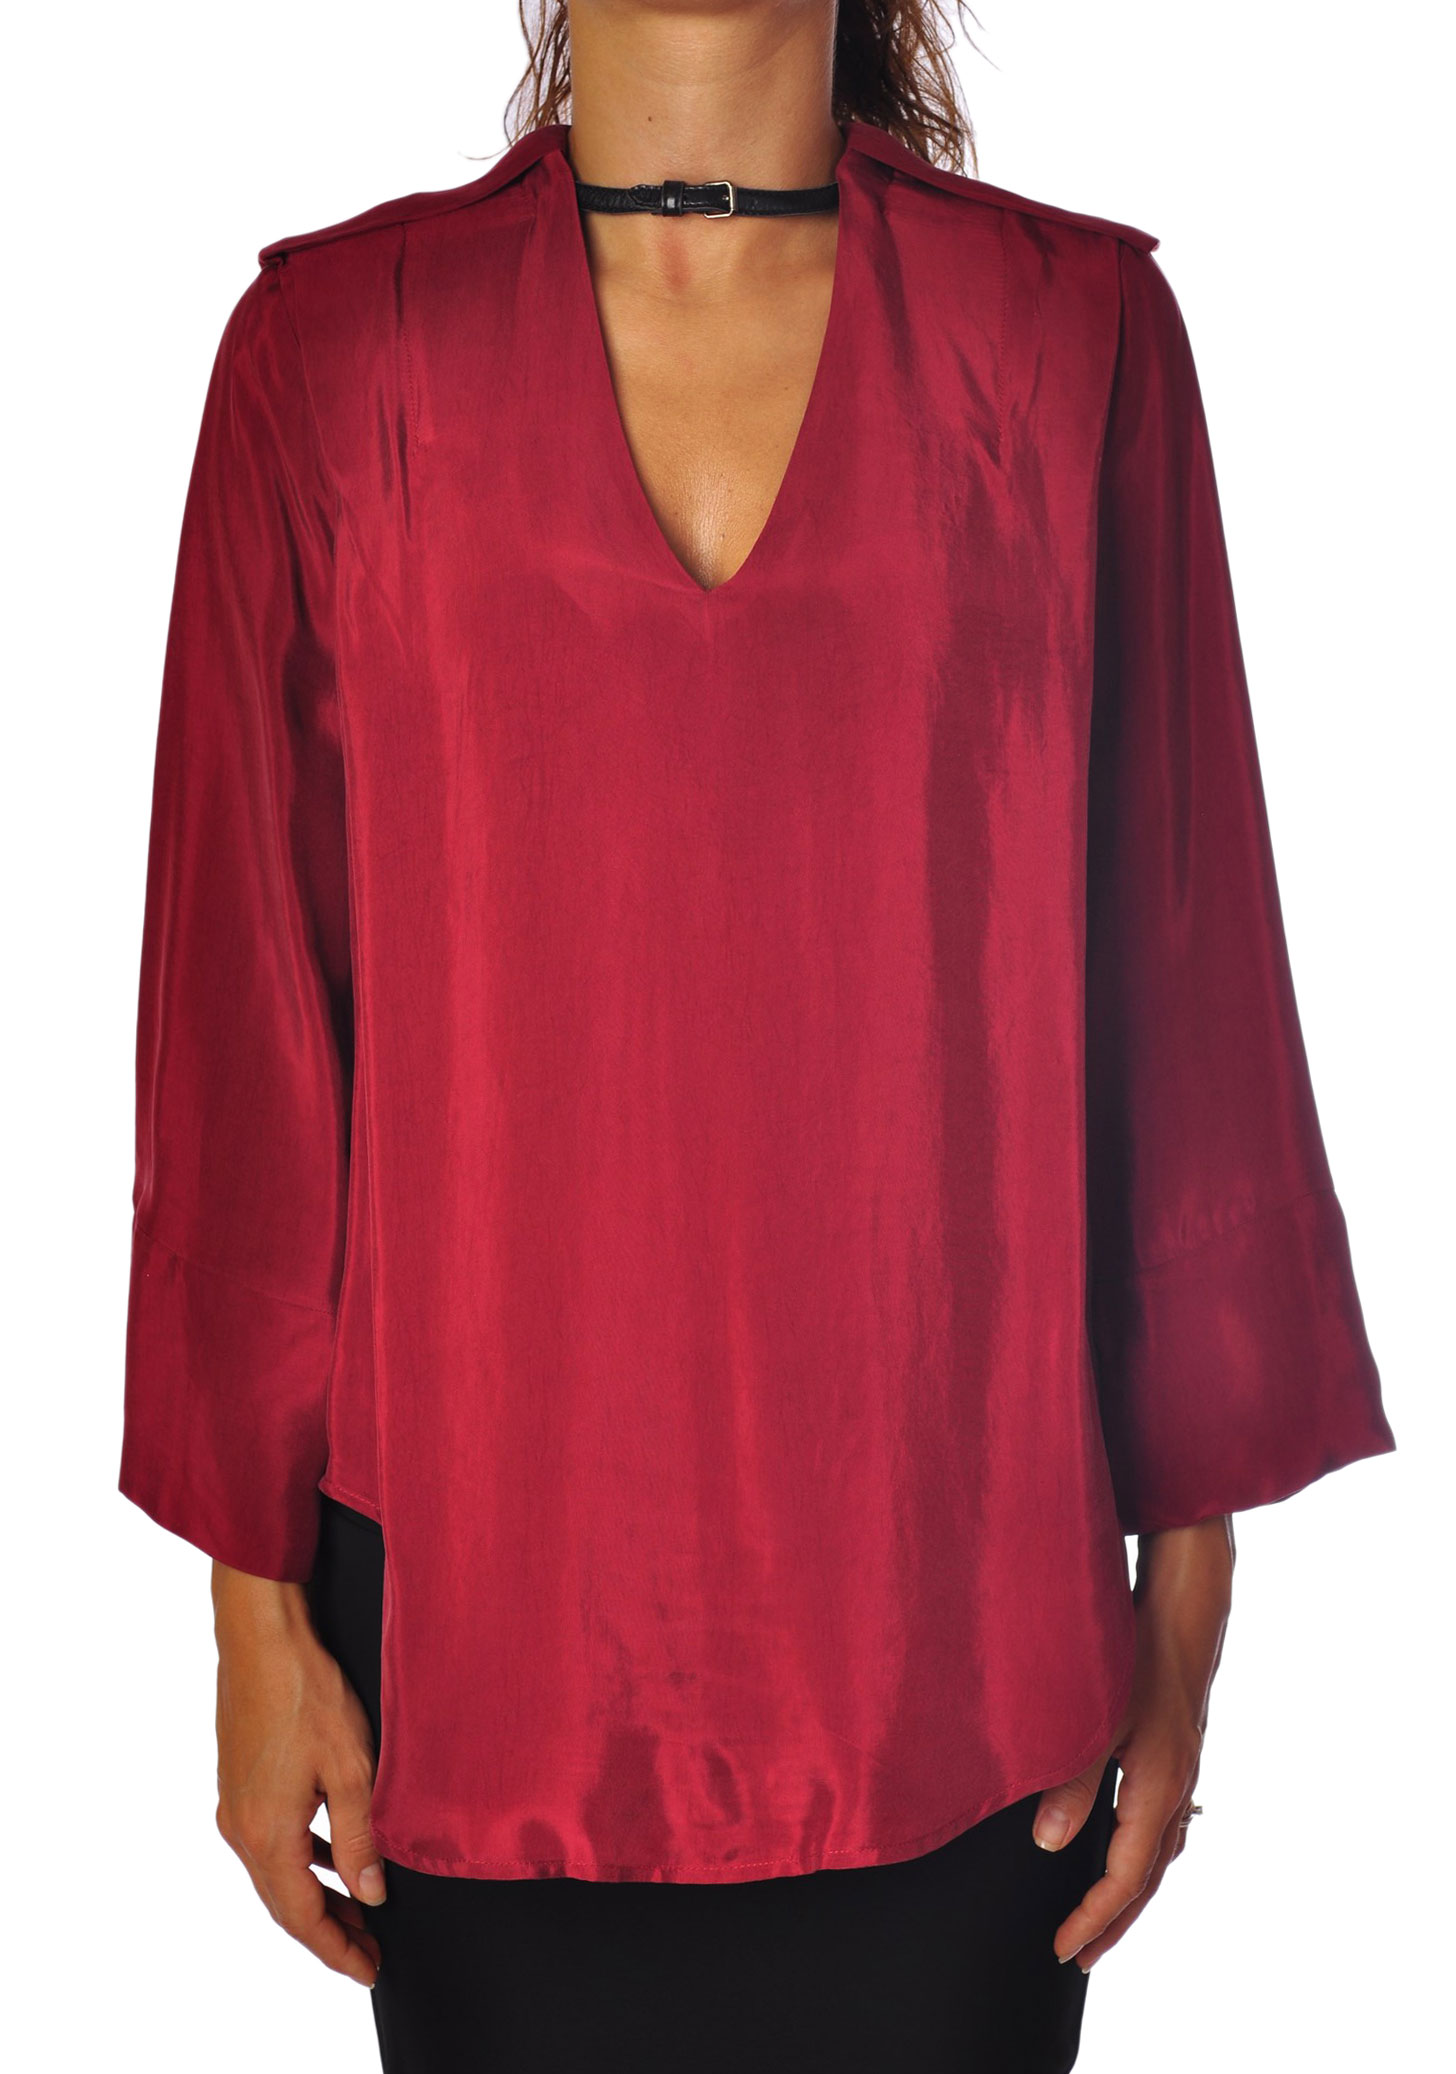 8pm  -  Blouses - Female - rot - 116424A183846